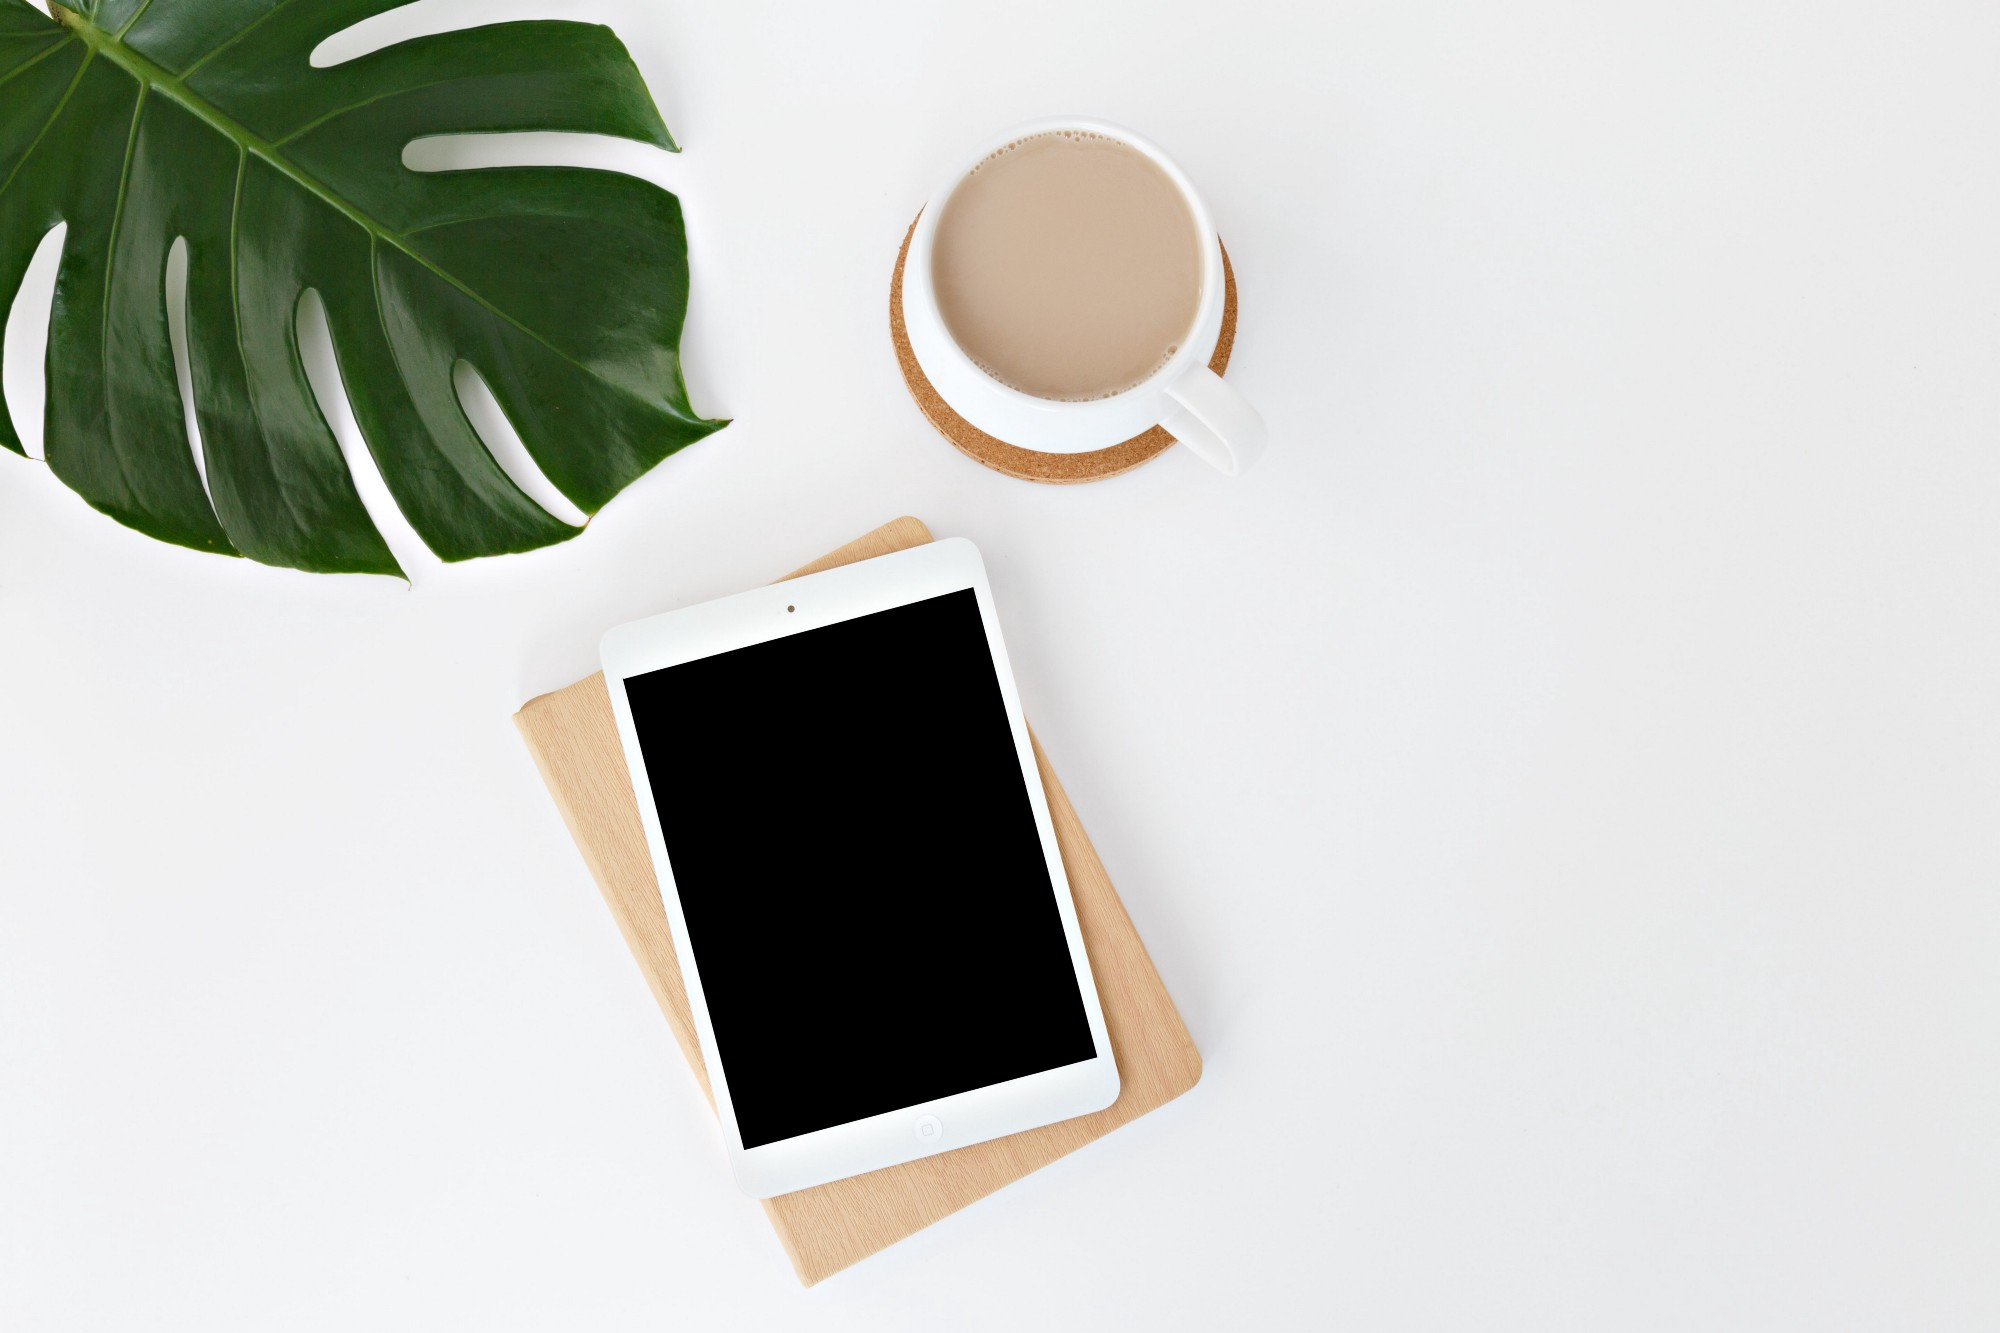 An iPad and Cup of Coffee sit on a desk, beside a plant.